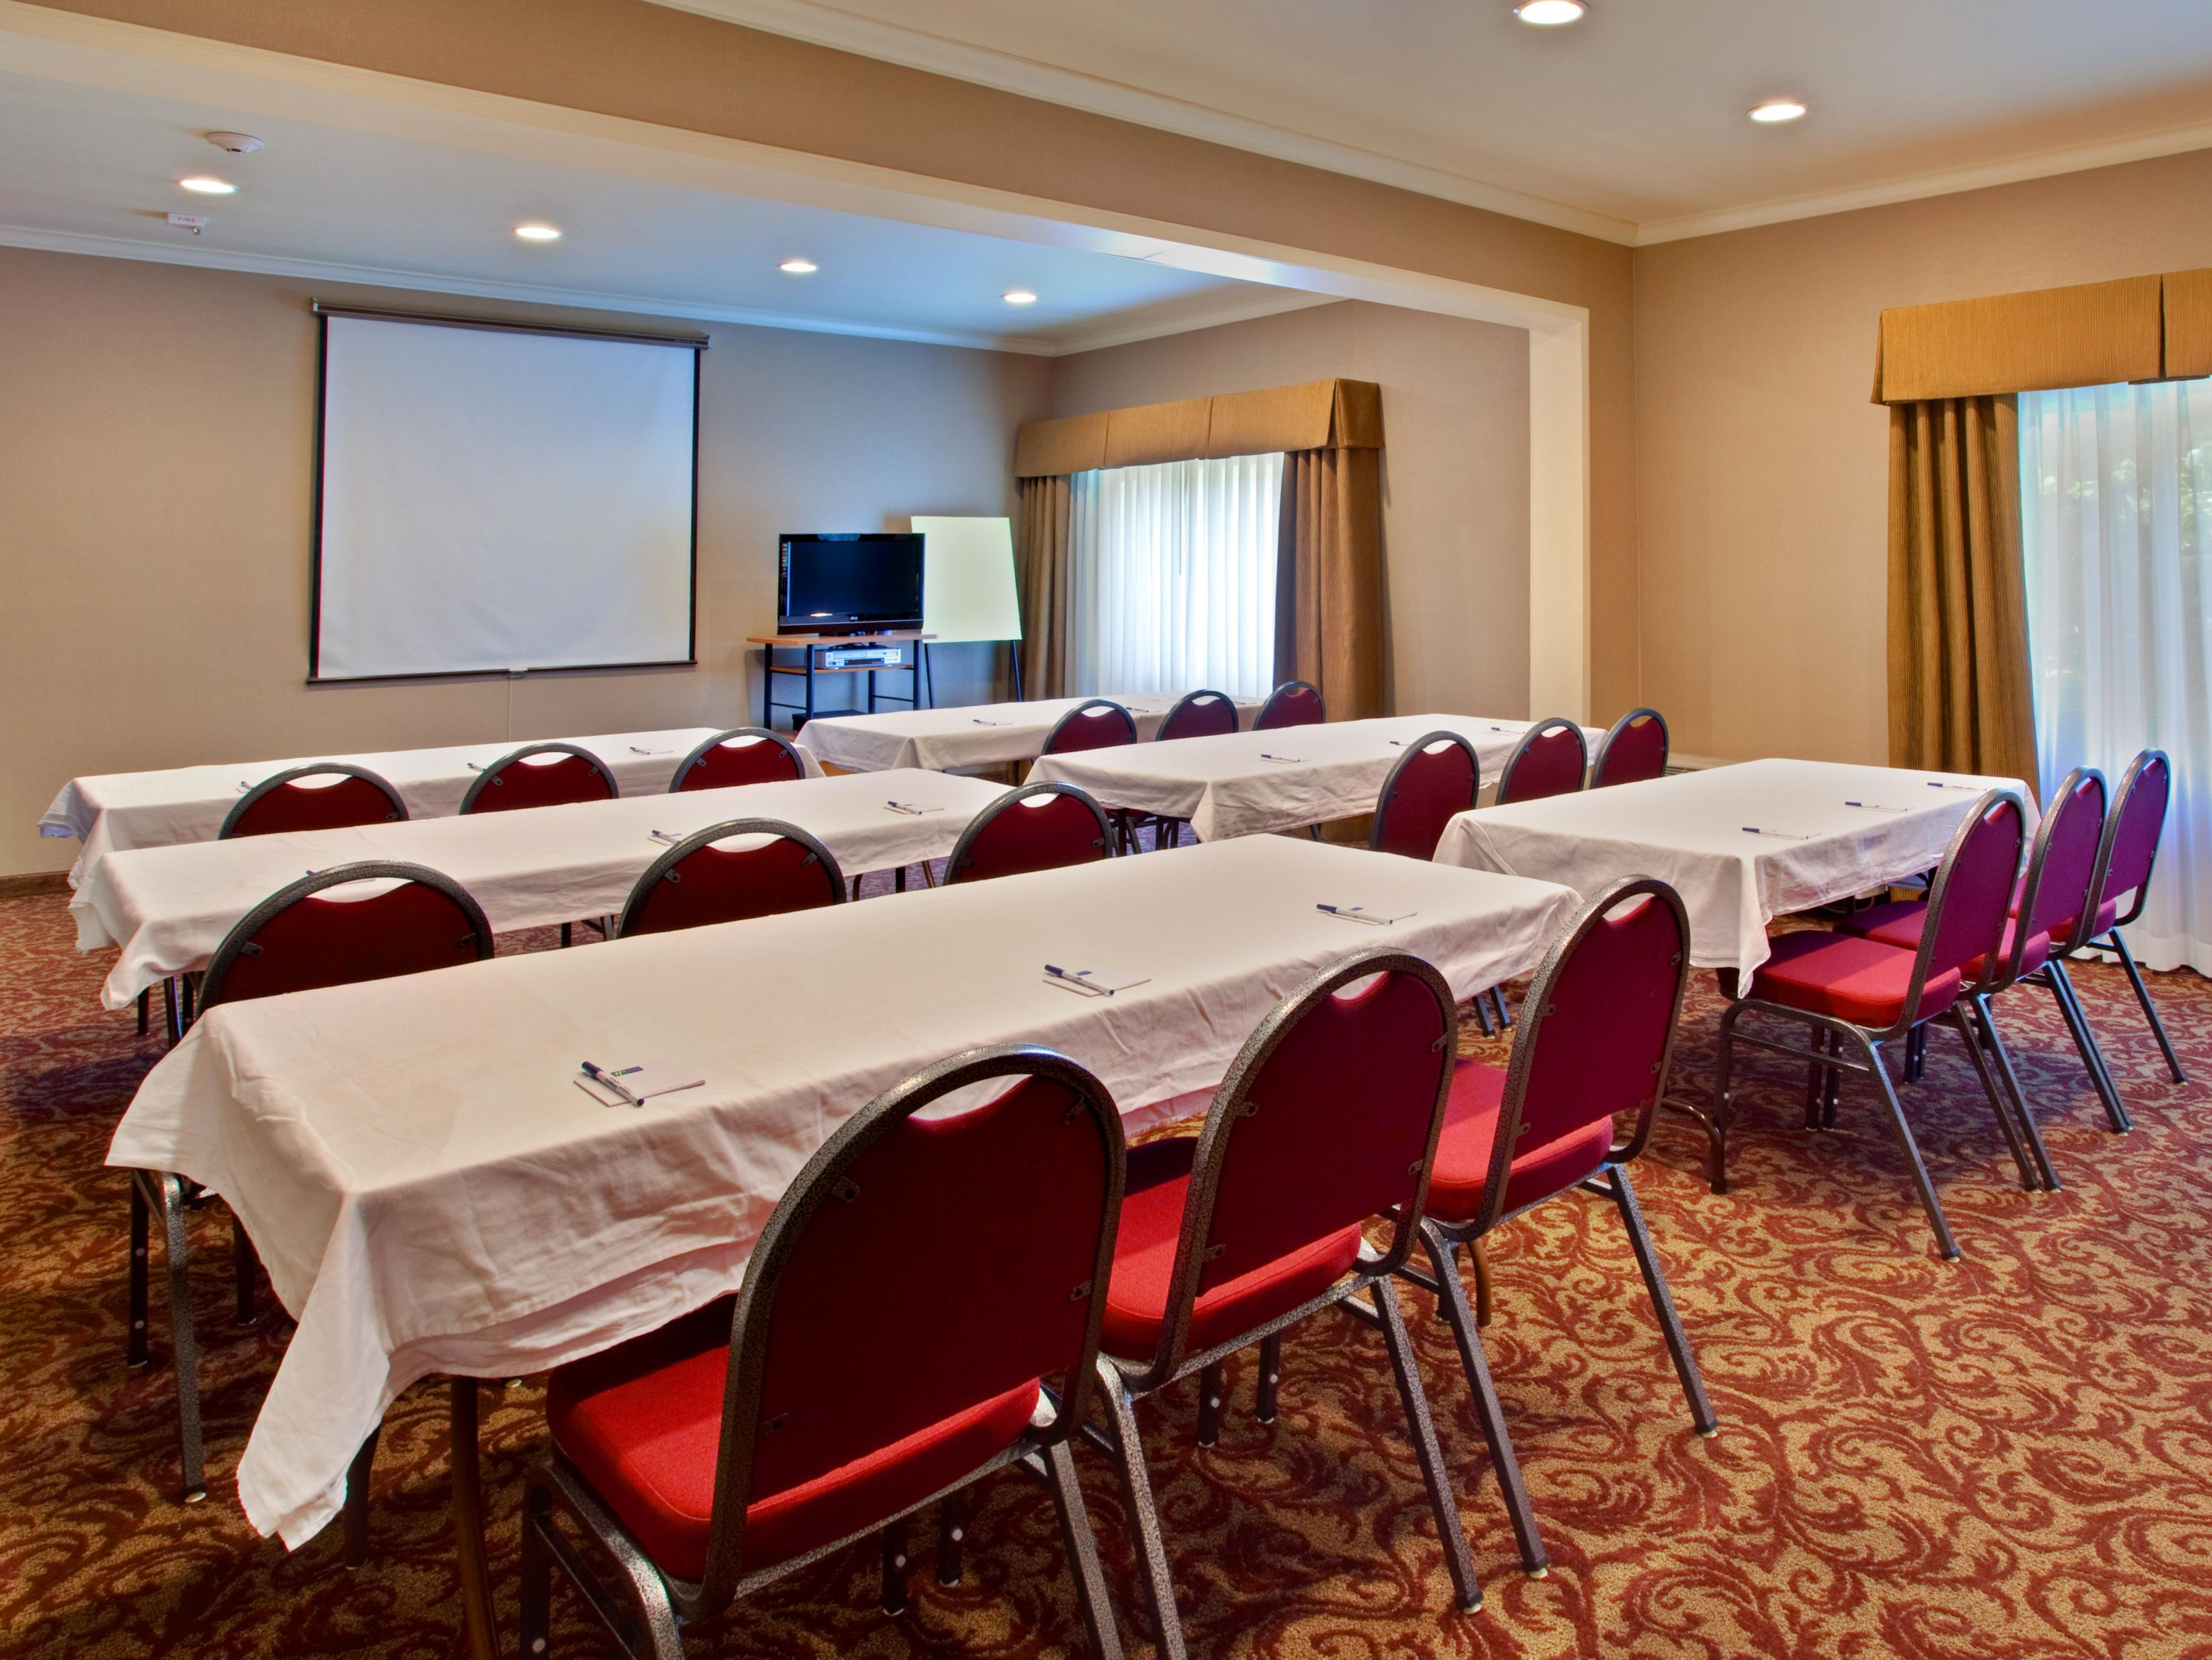 Meeting room can hold up to 45 guests in many different setups